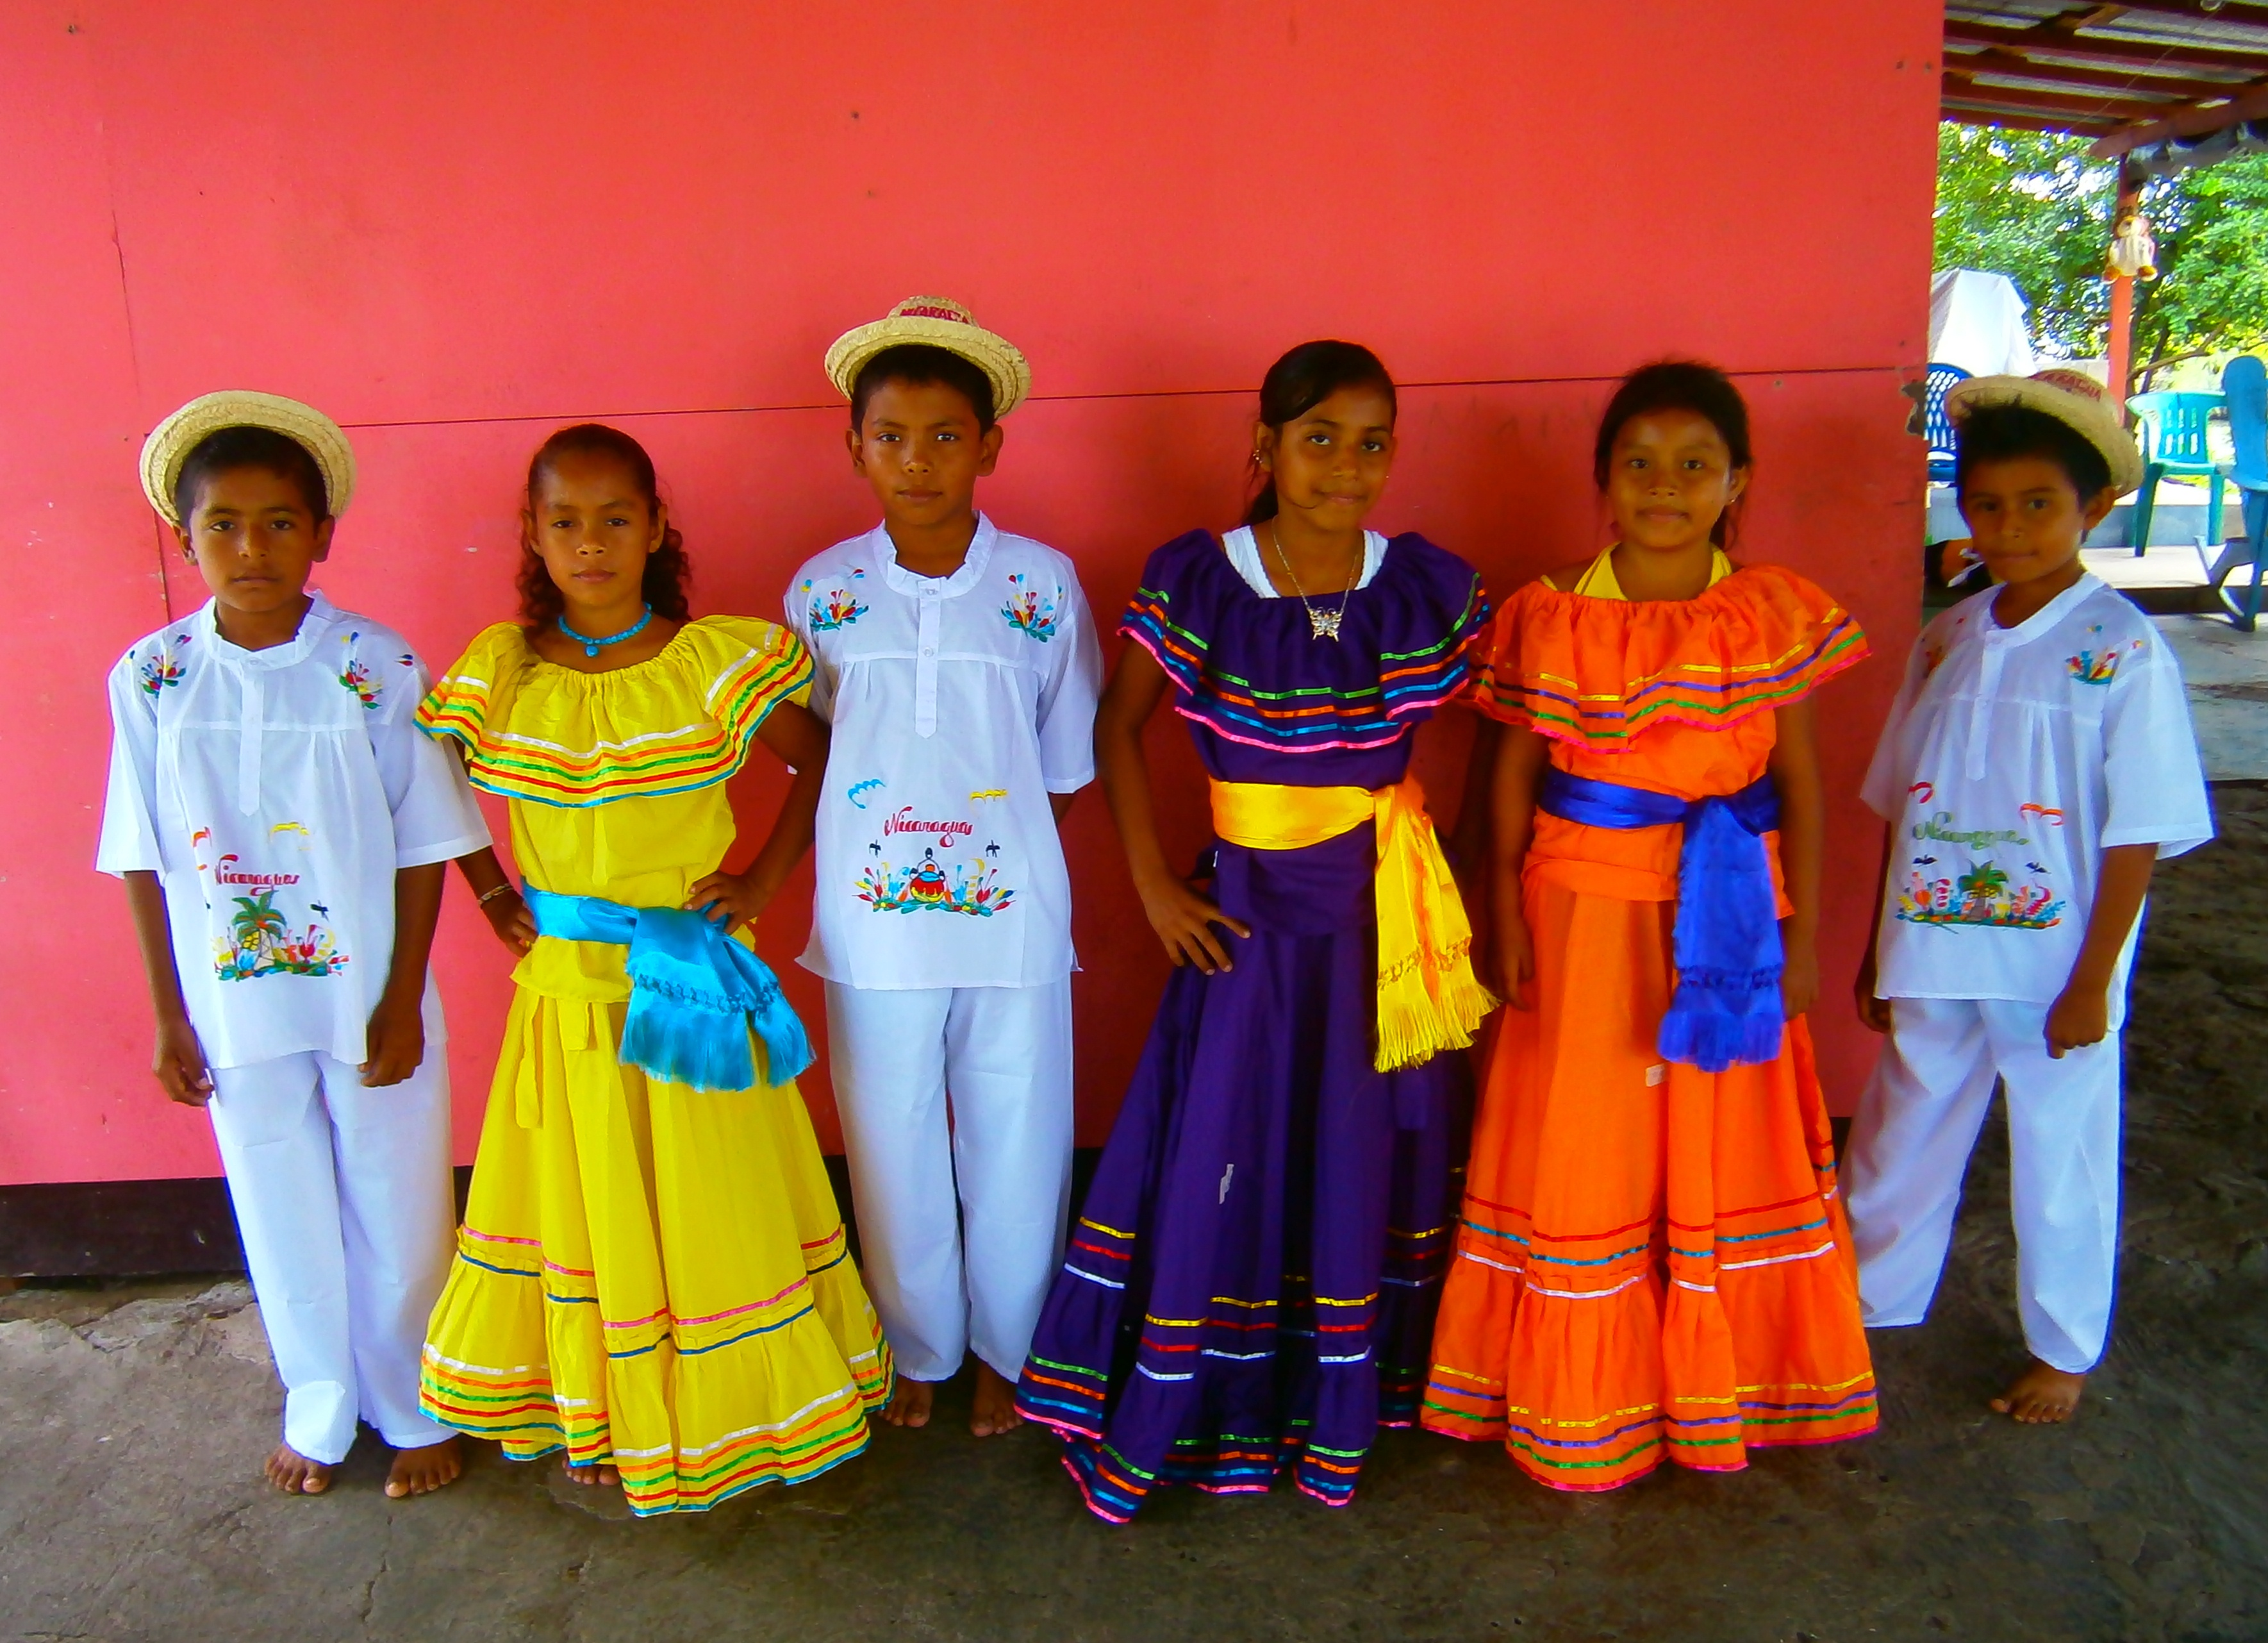 Traditional Nicaraguan Dance Costumes for the